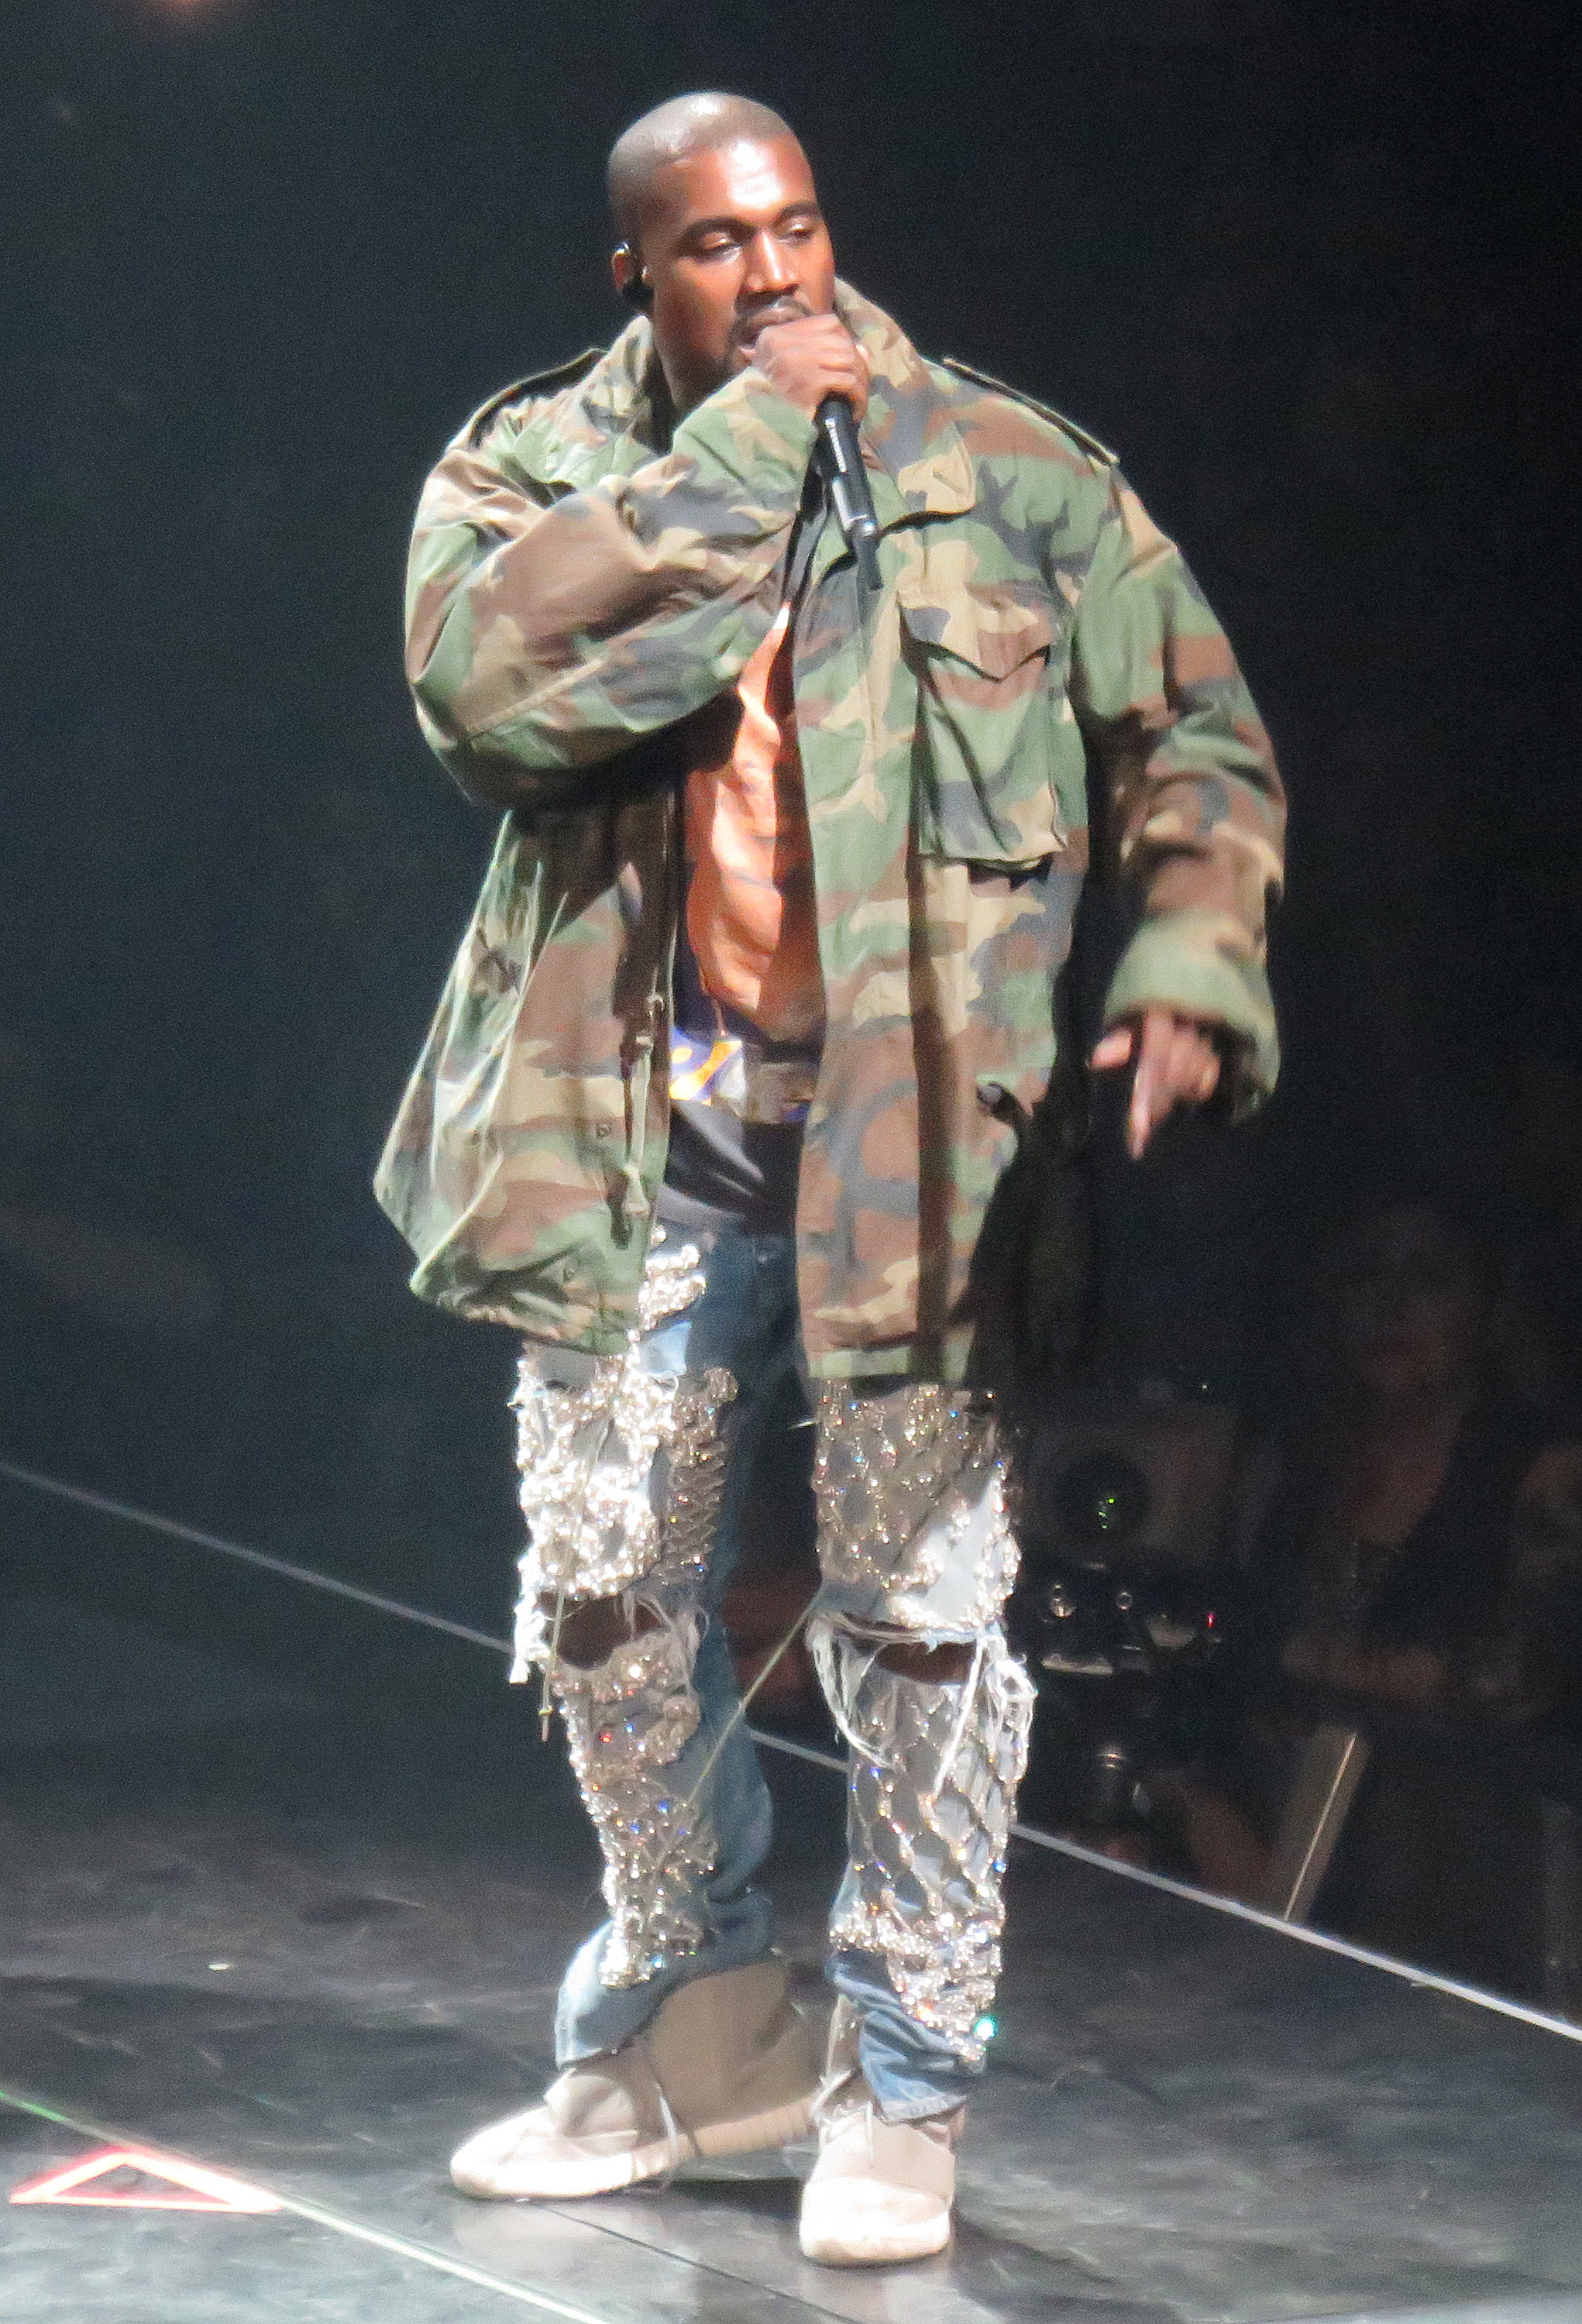 Kanye doesn't have time for Cudi's insults (Photo credit: Splash News)